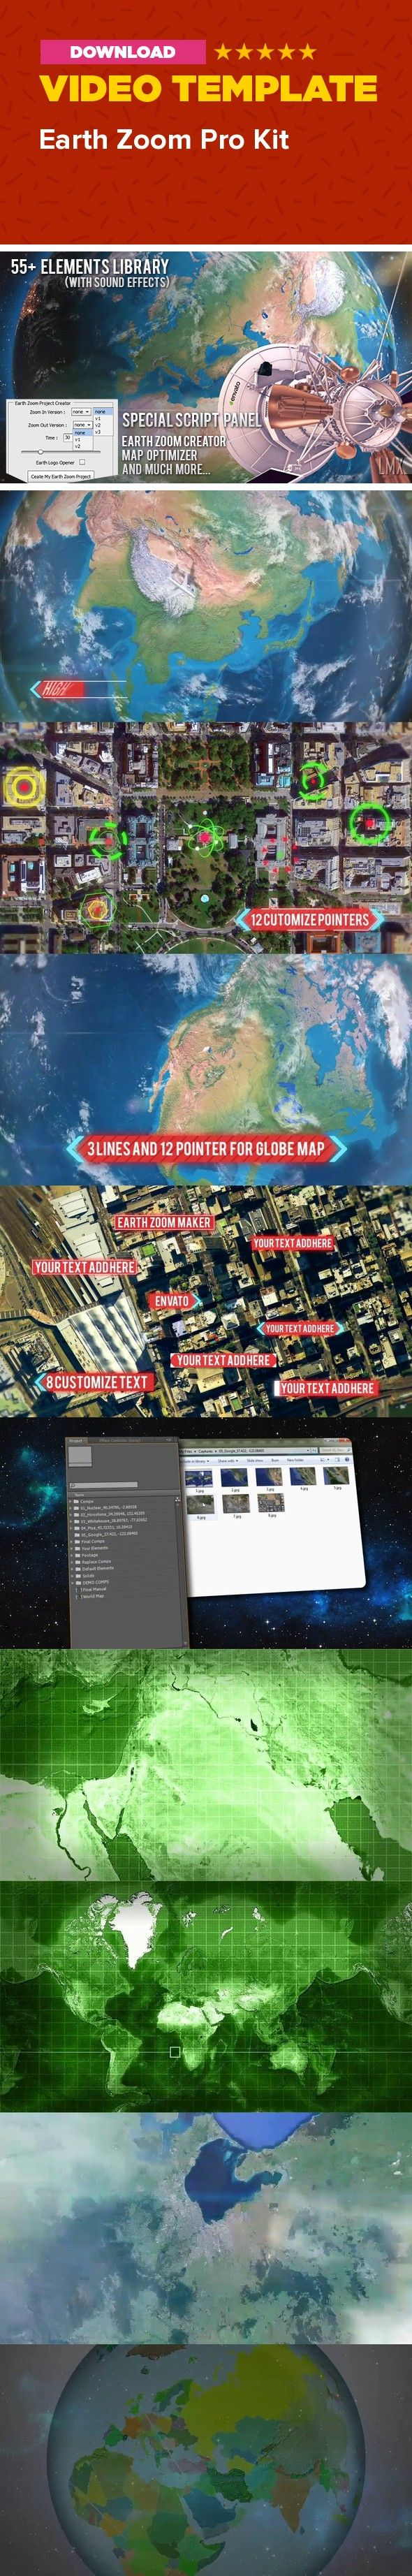 Earth zoom pro kit earth and logos country create earth earth zoom fly geopolitical globe highlight logo map opener state street world zoom you can zoom in or out a specific gumiabroncs Gallery